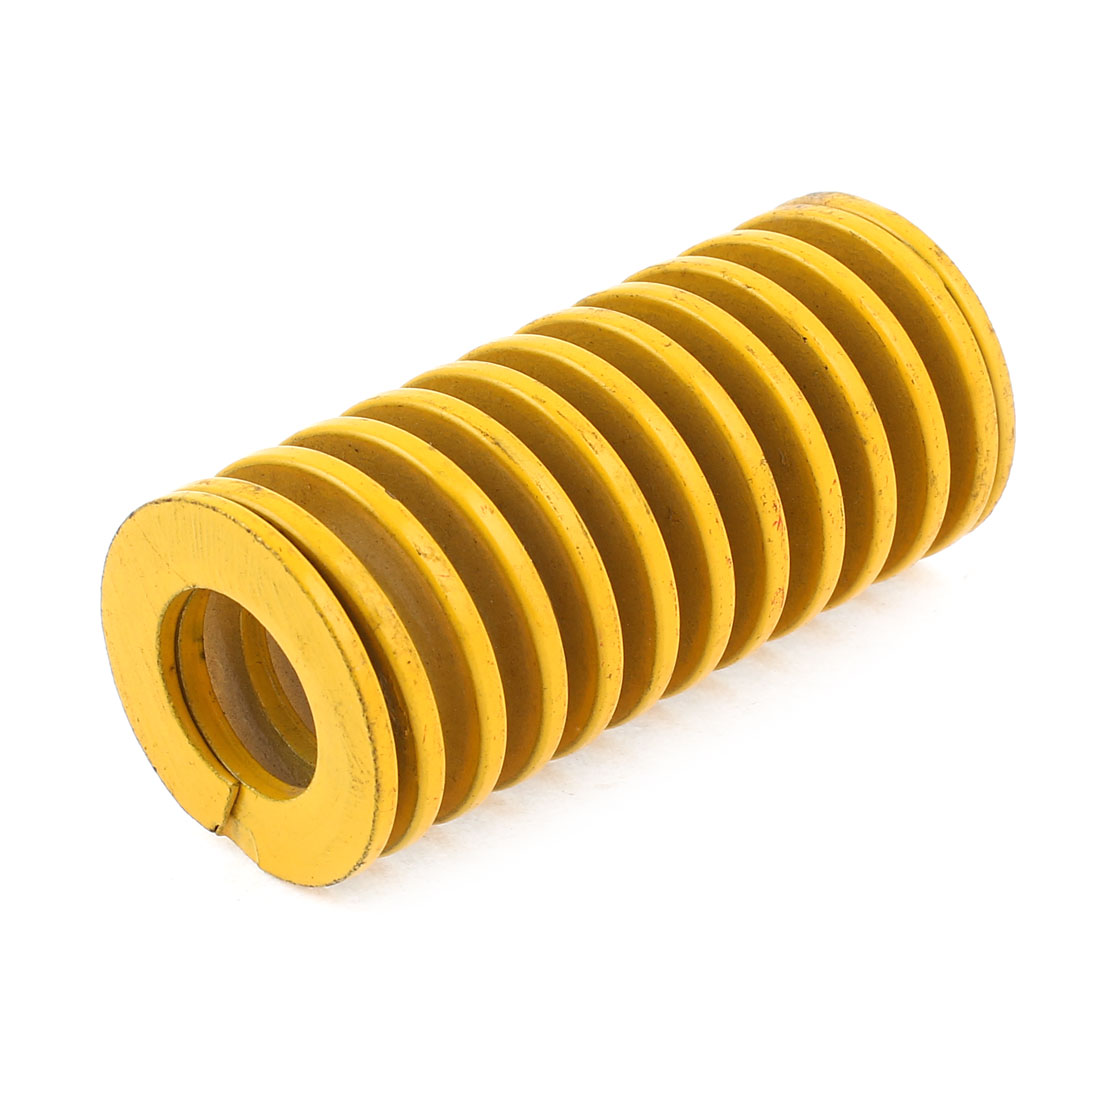 Yellow Alloy Steel Light Load Press Flat Coil Compression Die Spring 35mm x 17.5mm x 75mm